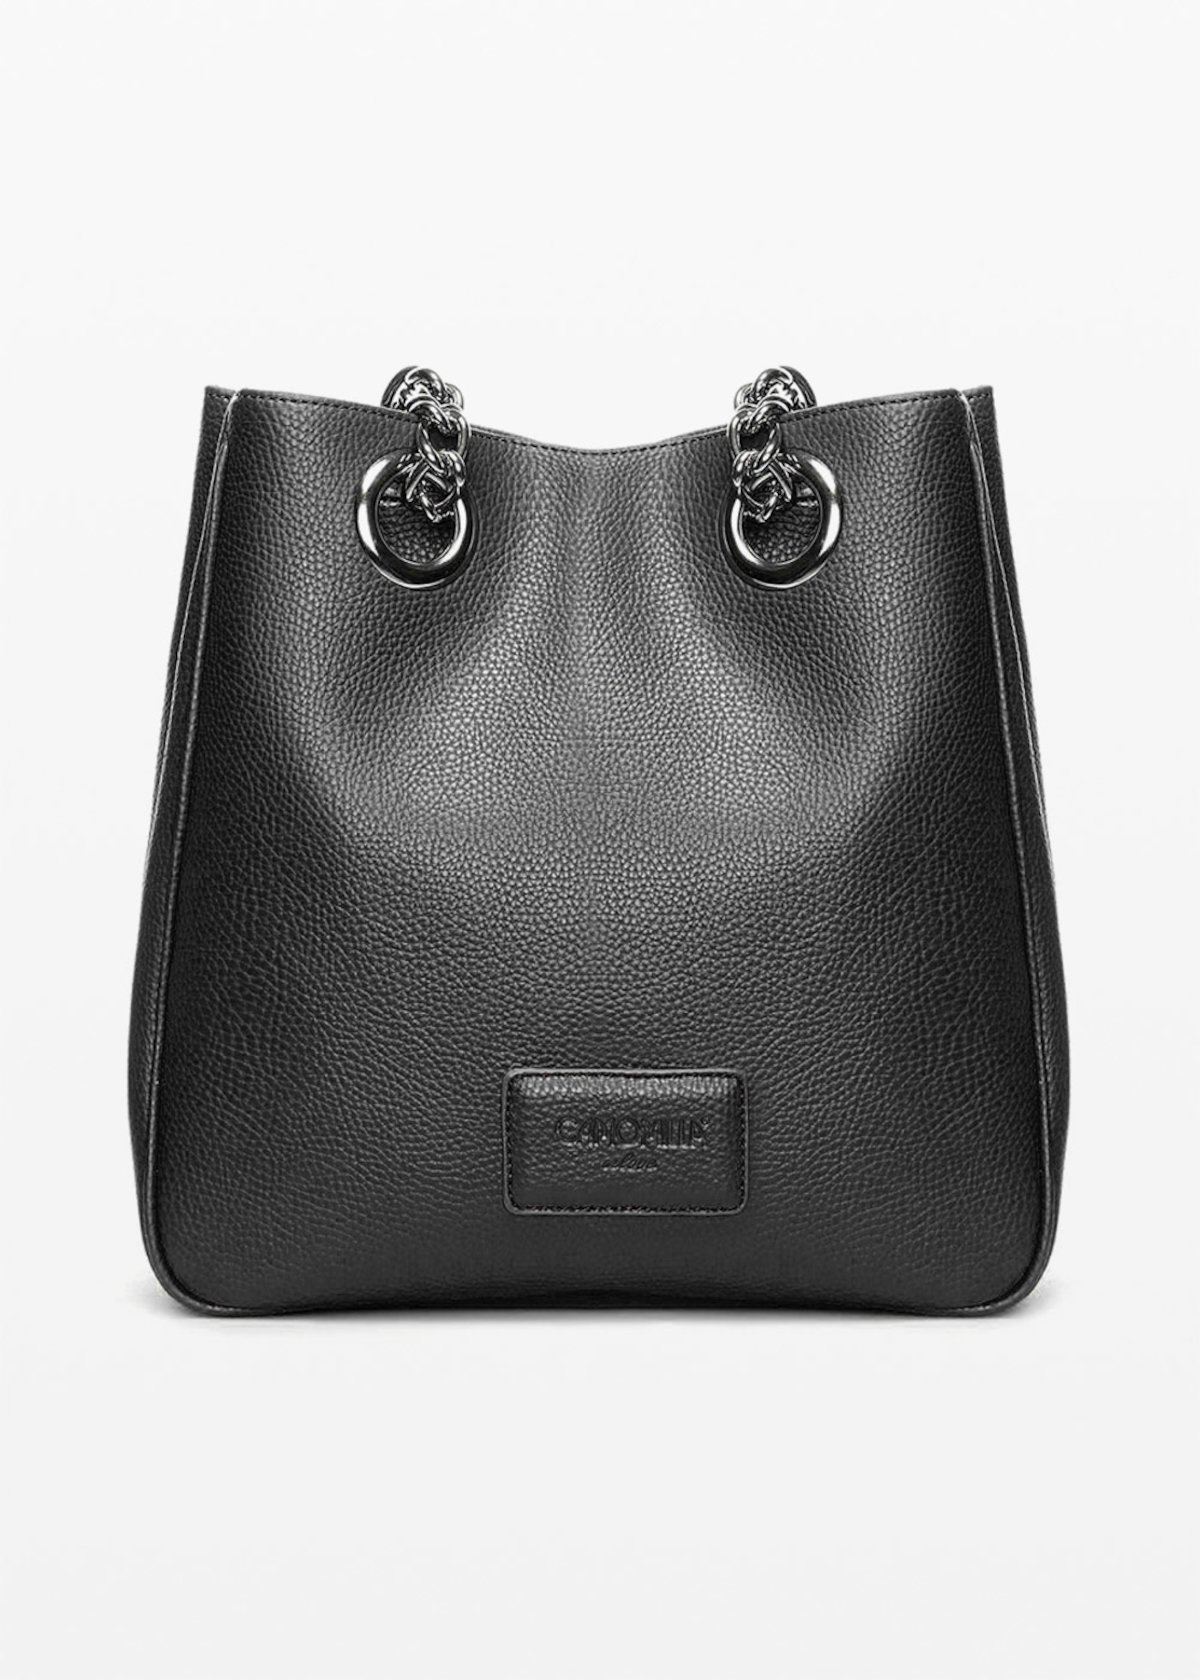 Shopping bag Brend in ecopelle stampa cervo con manici a catena - Black - Donna